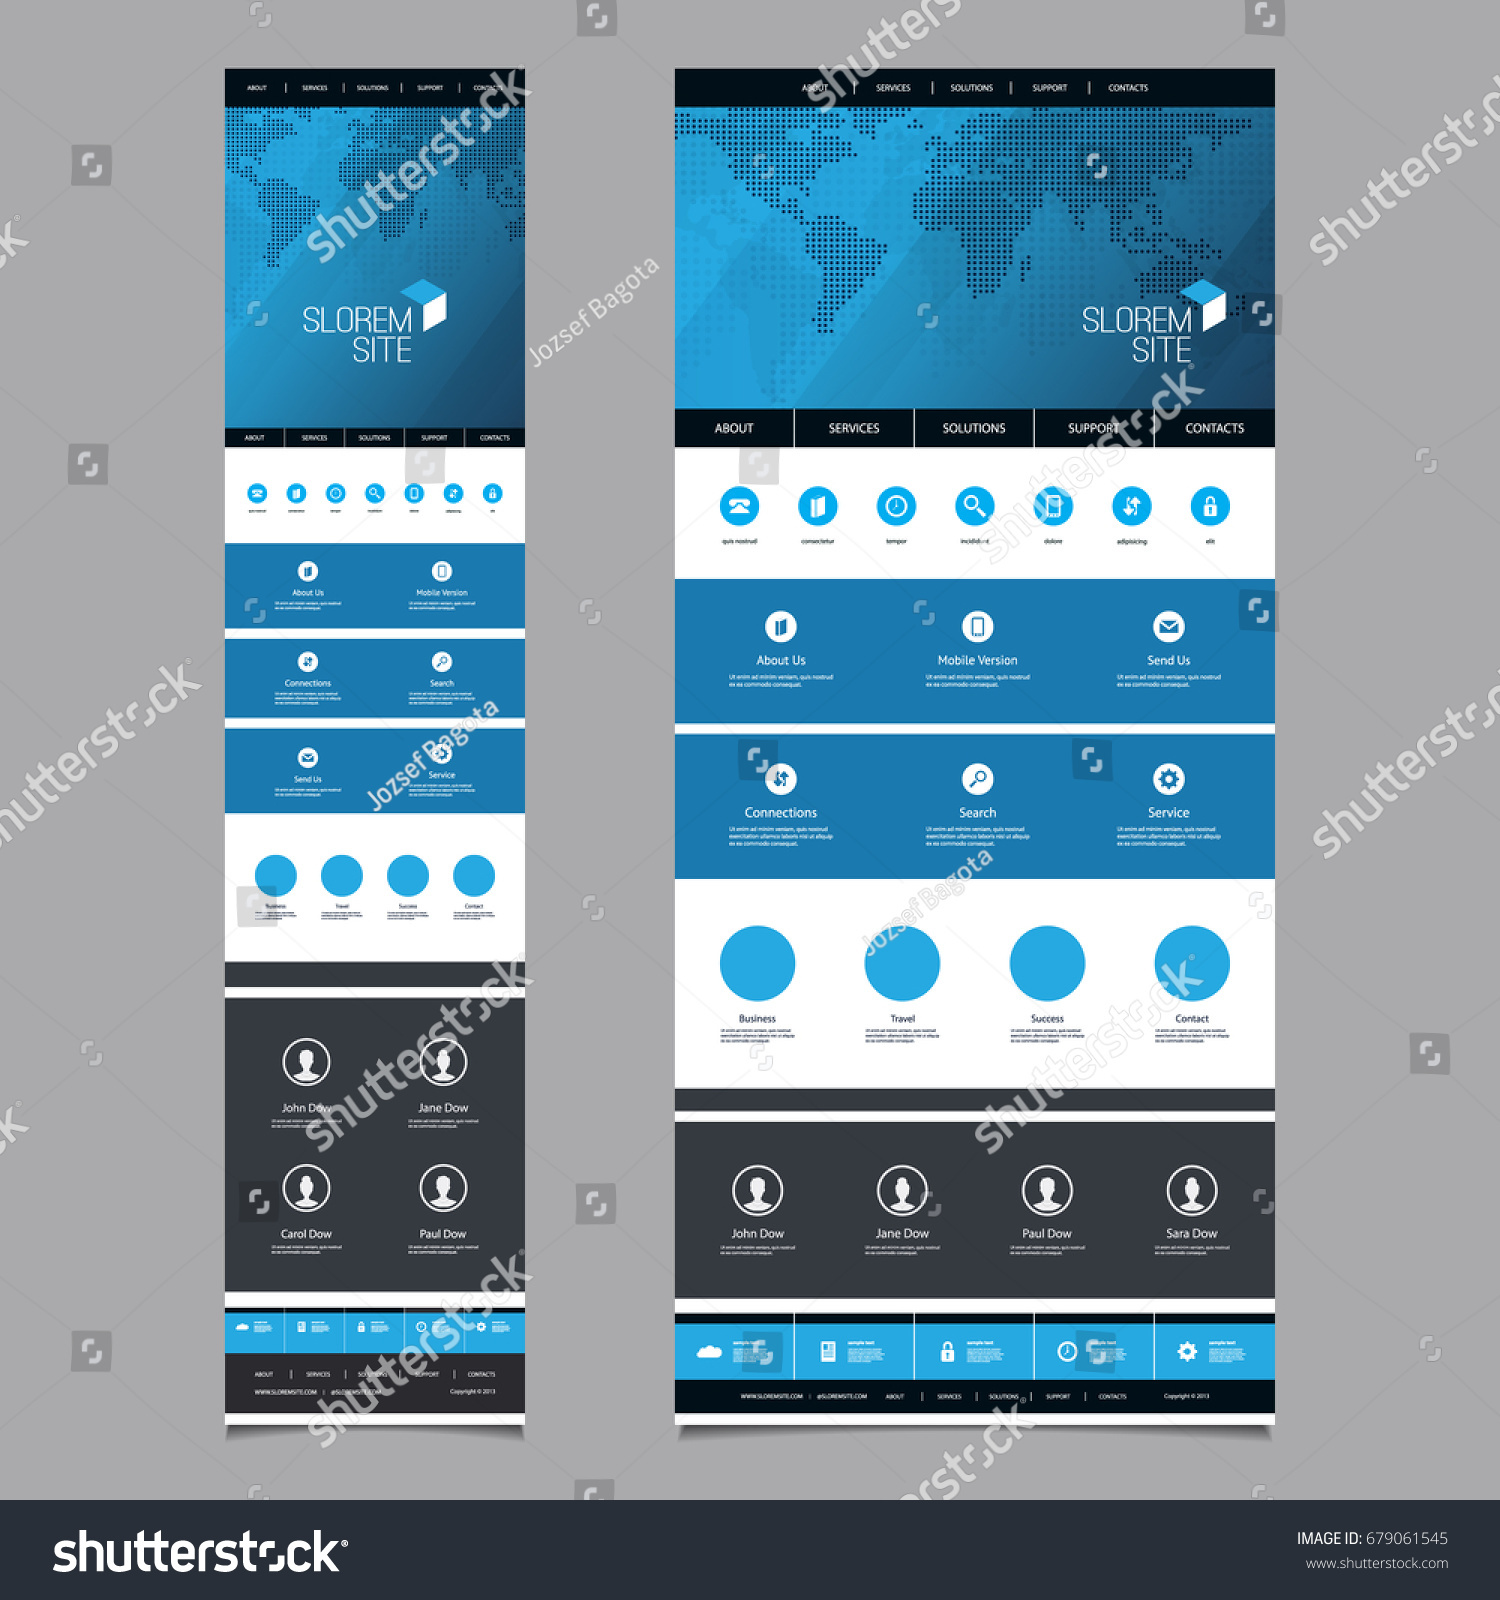 Responsive one page website template header vectores en stock responsive one page website template header design with world map desktop and mobile version gumiabroncs Choice Image